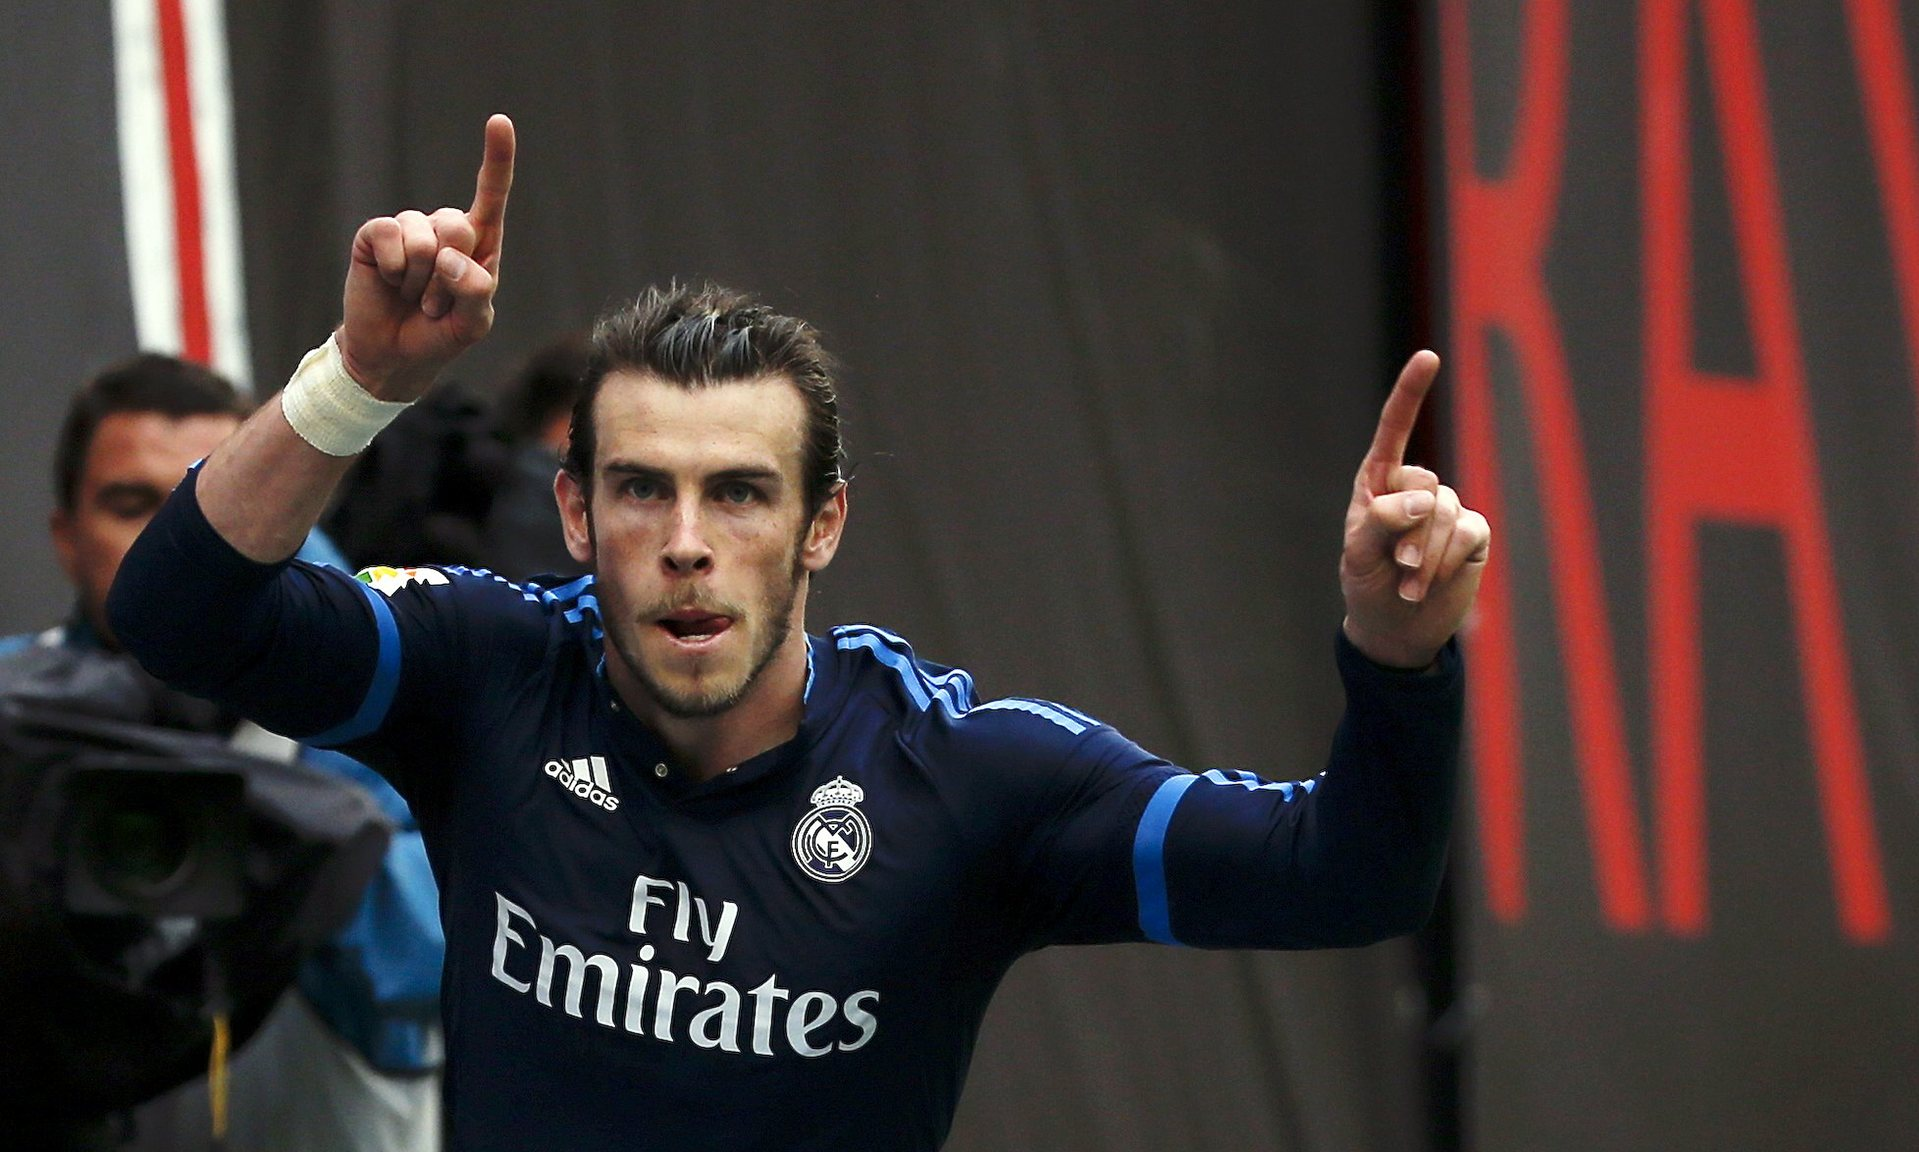 gareth bale celebrates after scoring his first goal in the match against rayo vallecano photo reuters